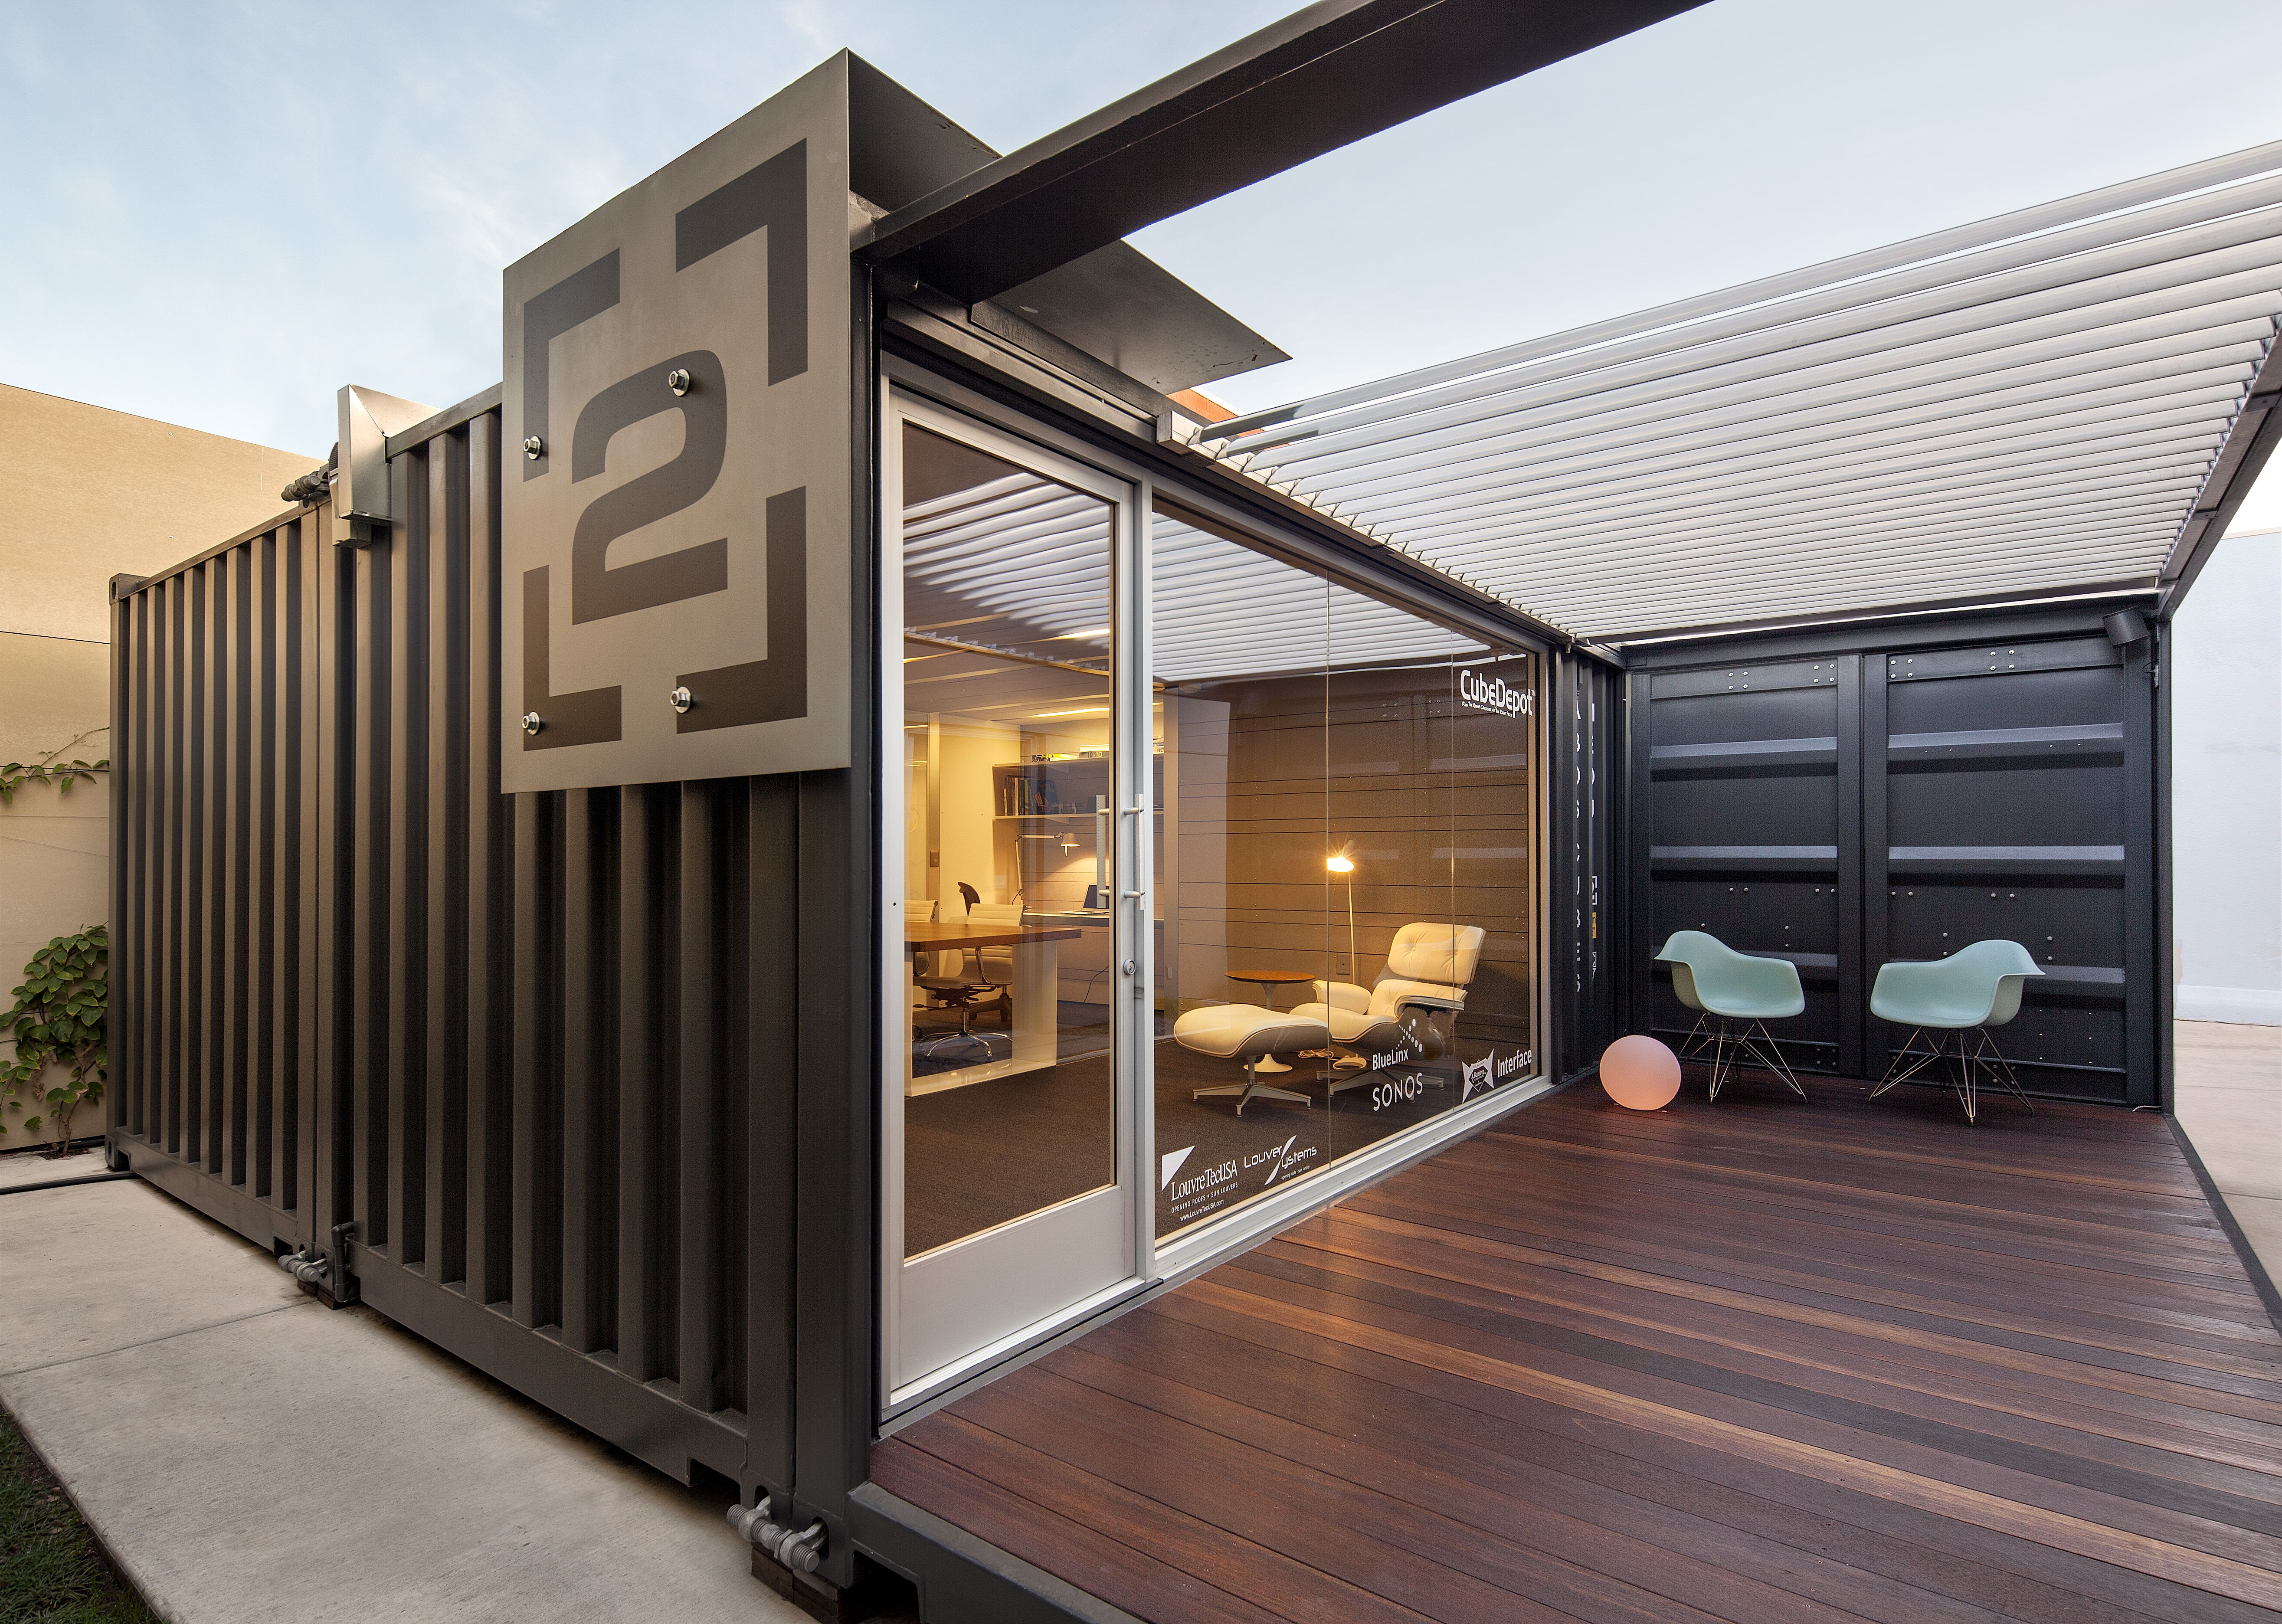 Our Me Ou Modular Office Container Container House Building A